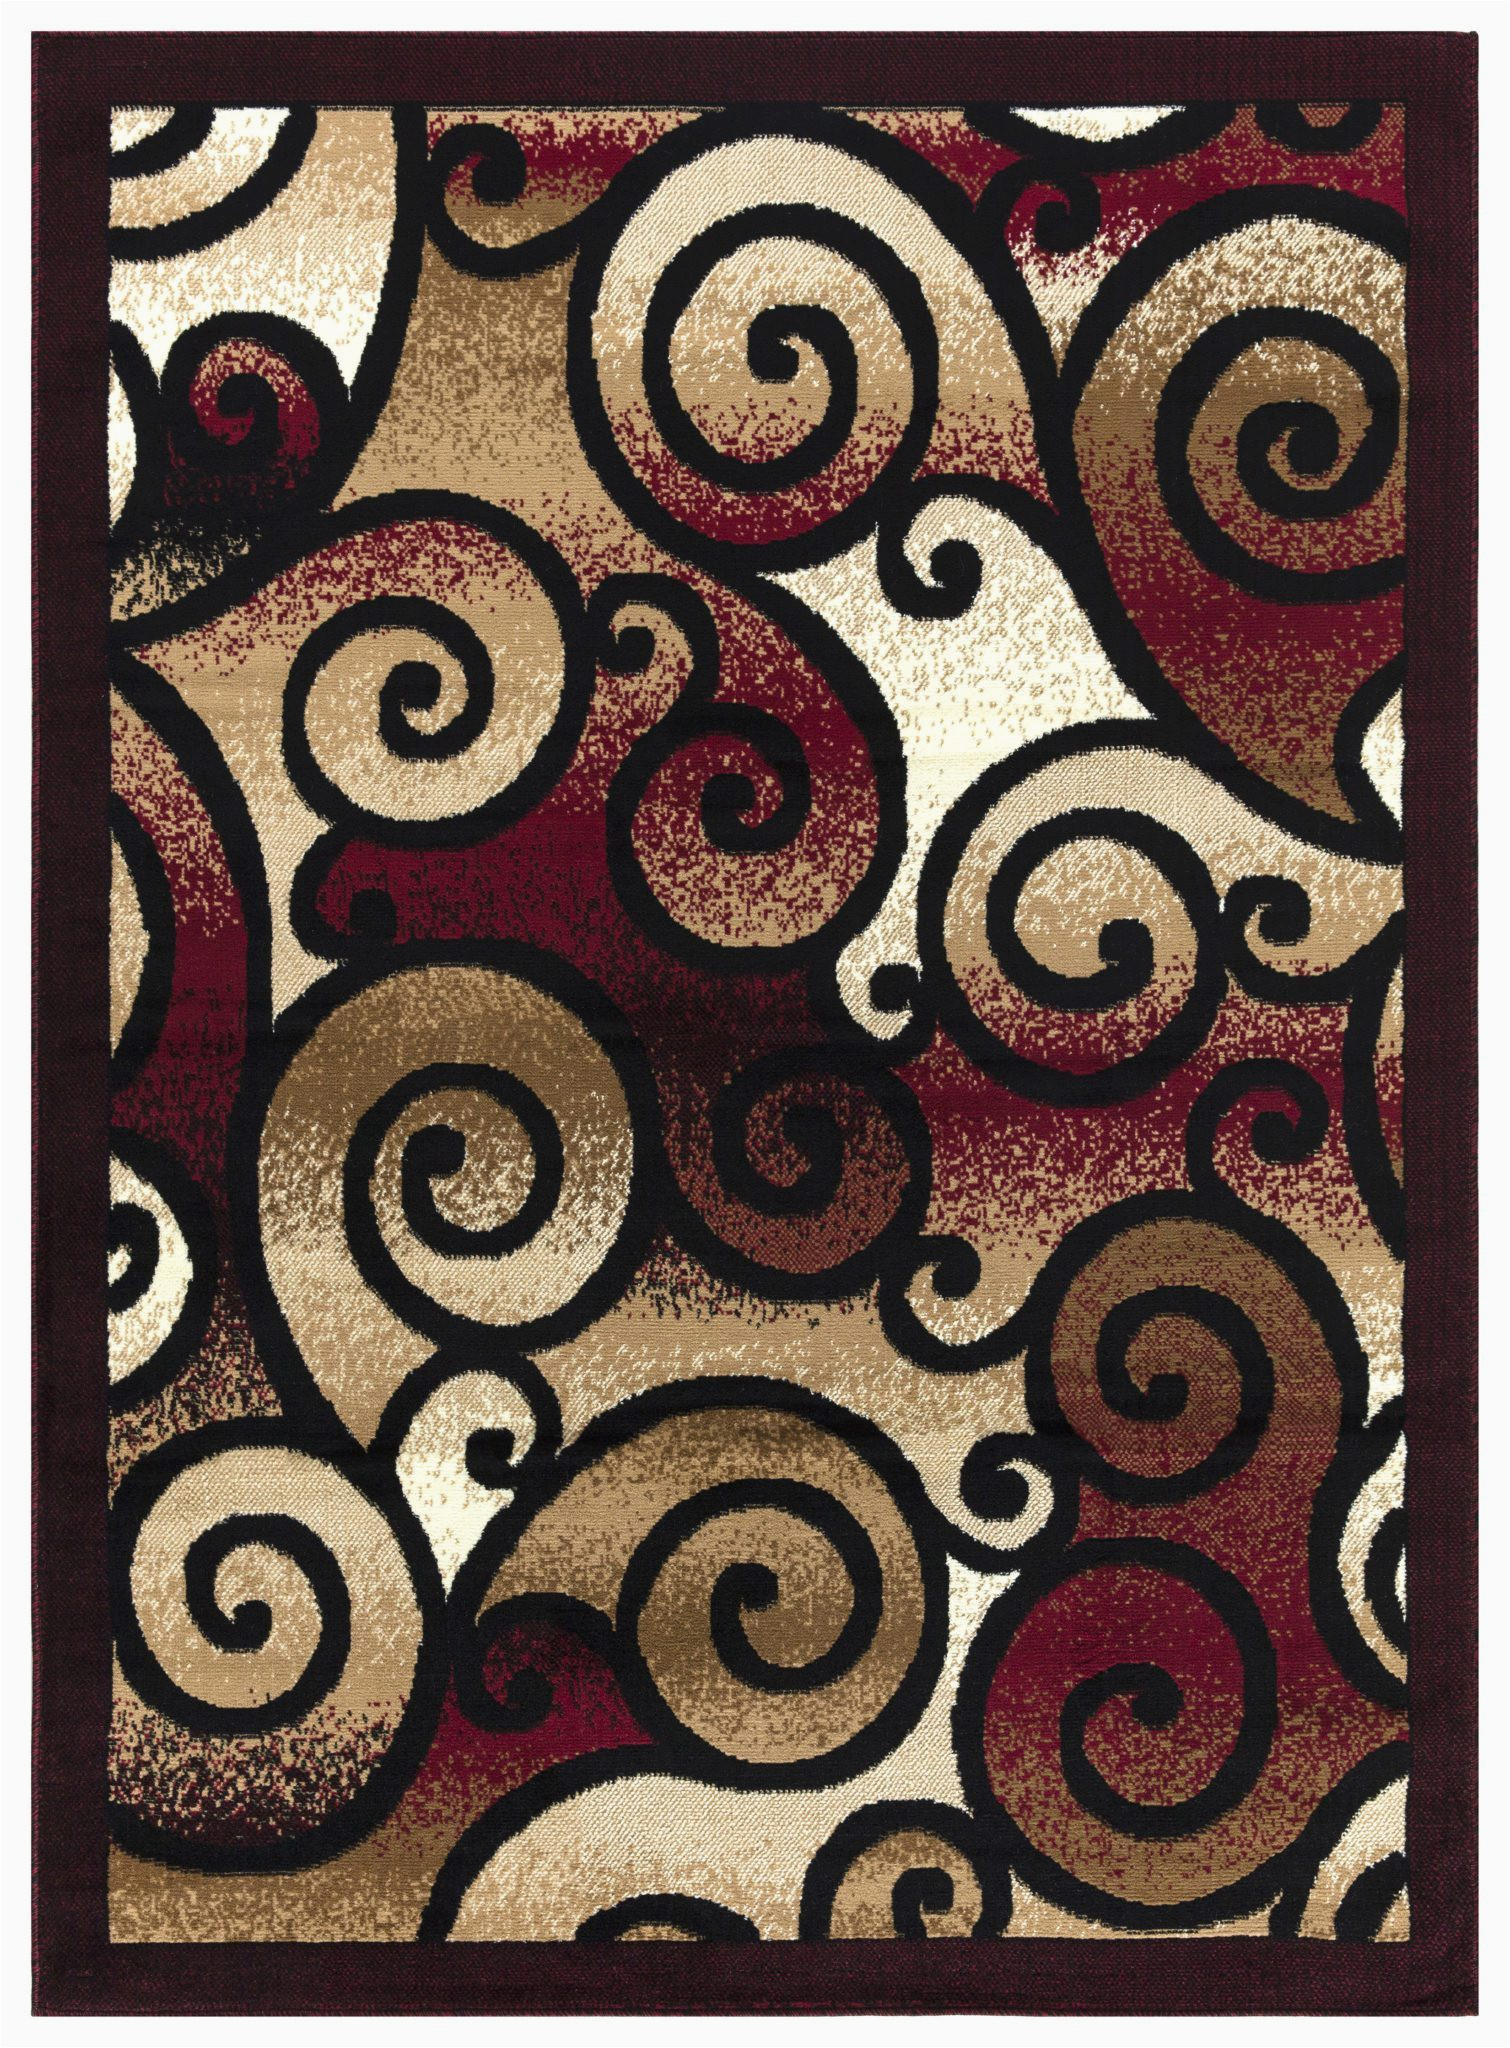 Burgundy and Blue area Rugs Princess Collection Geometric Swirl Abstract area Rug 806 Burgundy & Black – Beverly Rug